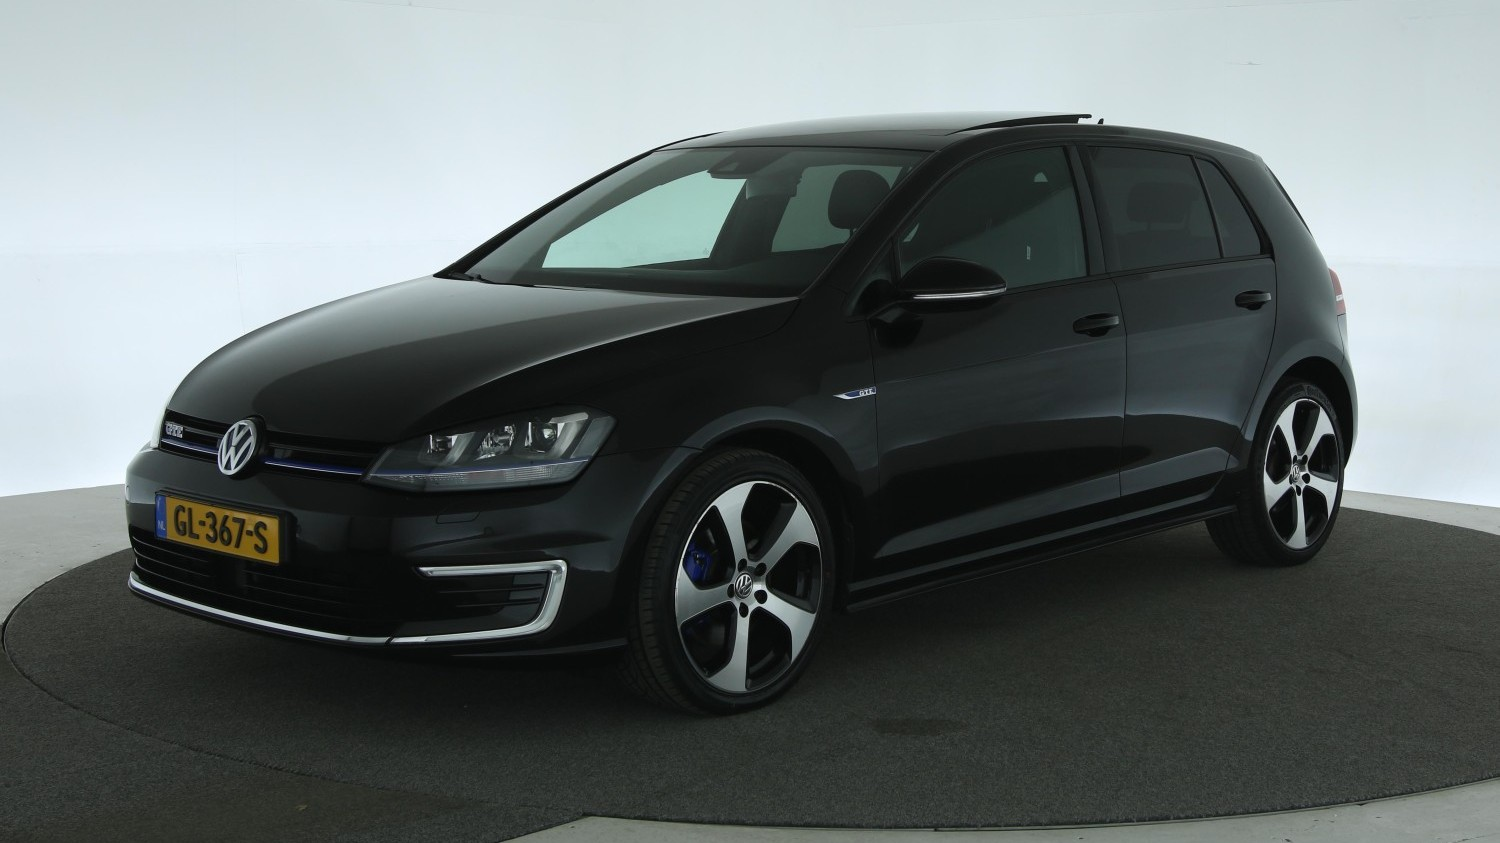 Volkswagen Golf Hatchback 2015 GL-367-S 1